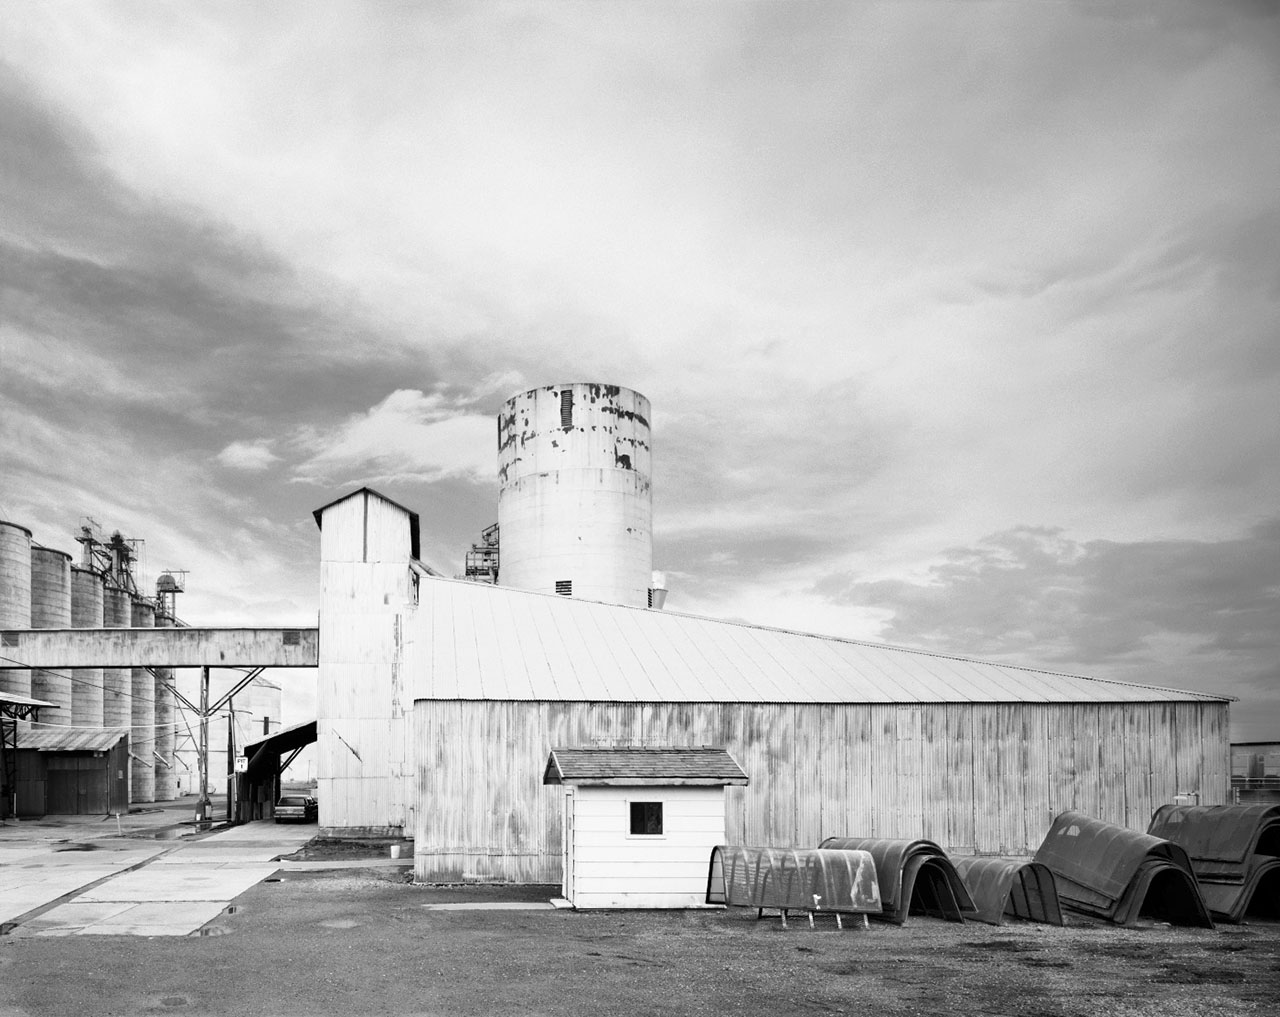 Grain Elevator Complex from David Stark Wilson's photography book Structures of Utility